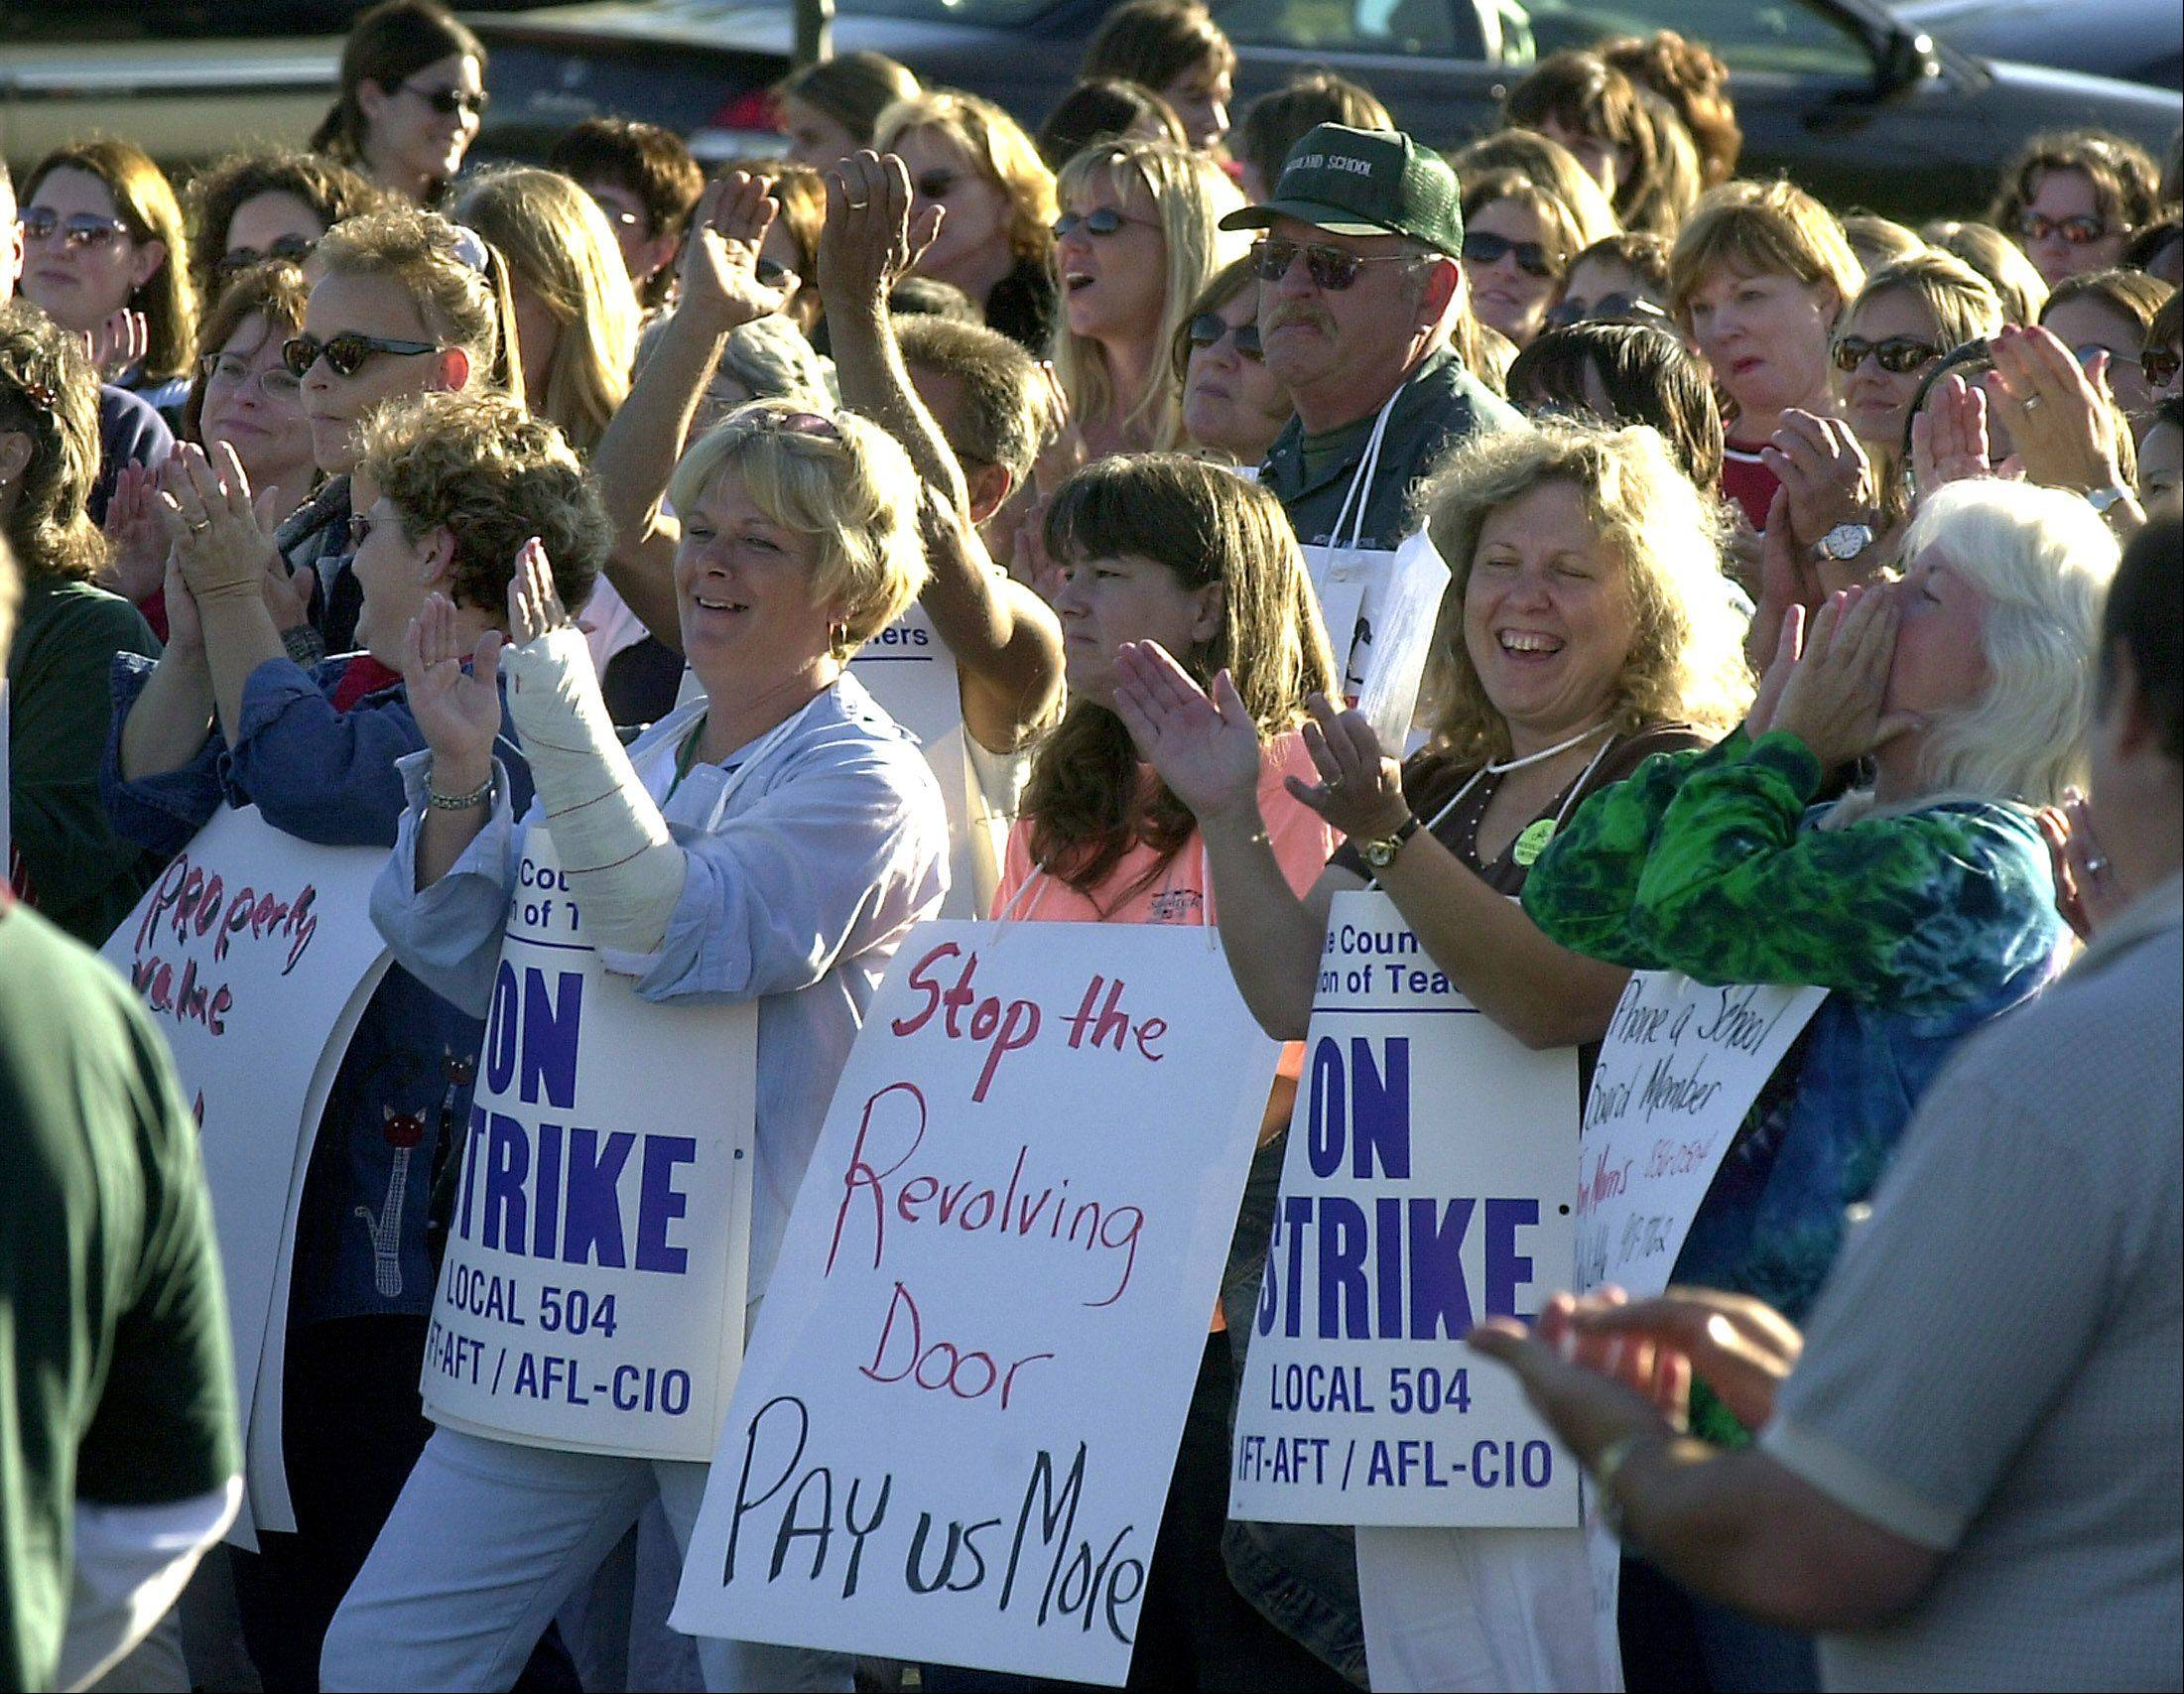 Suburban teachers' right to strike was not taken away in recent education reforms, though the law will make it tougher for Chicago teachers to strike. Above, a strike rally in Gurnee in 2003.